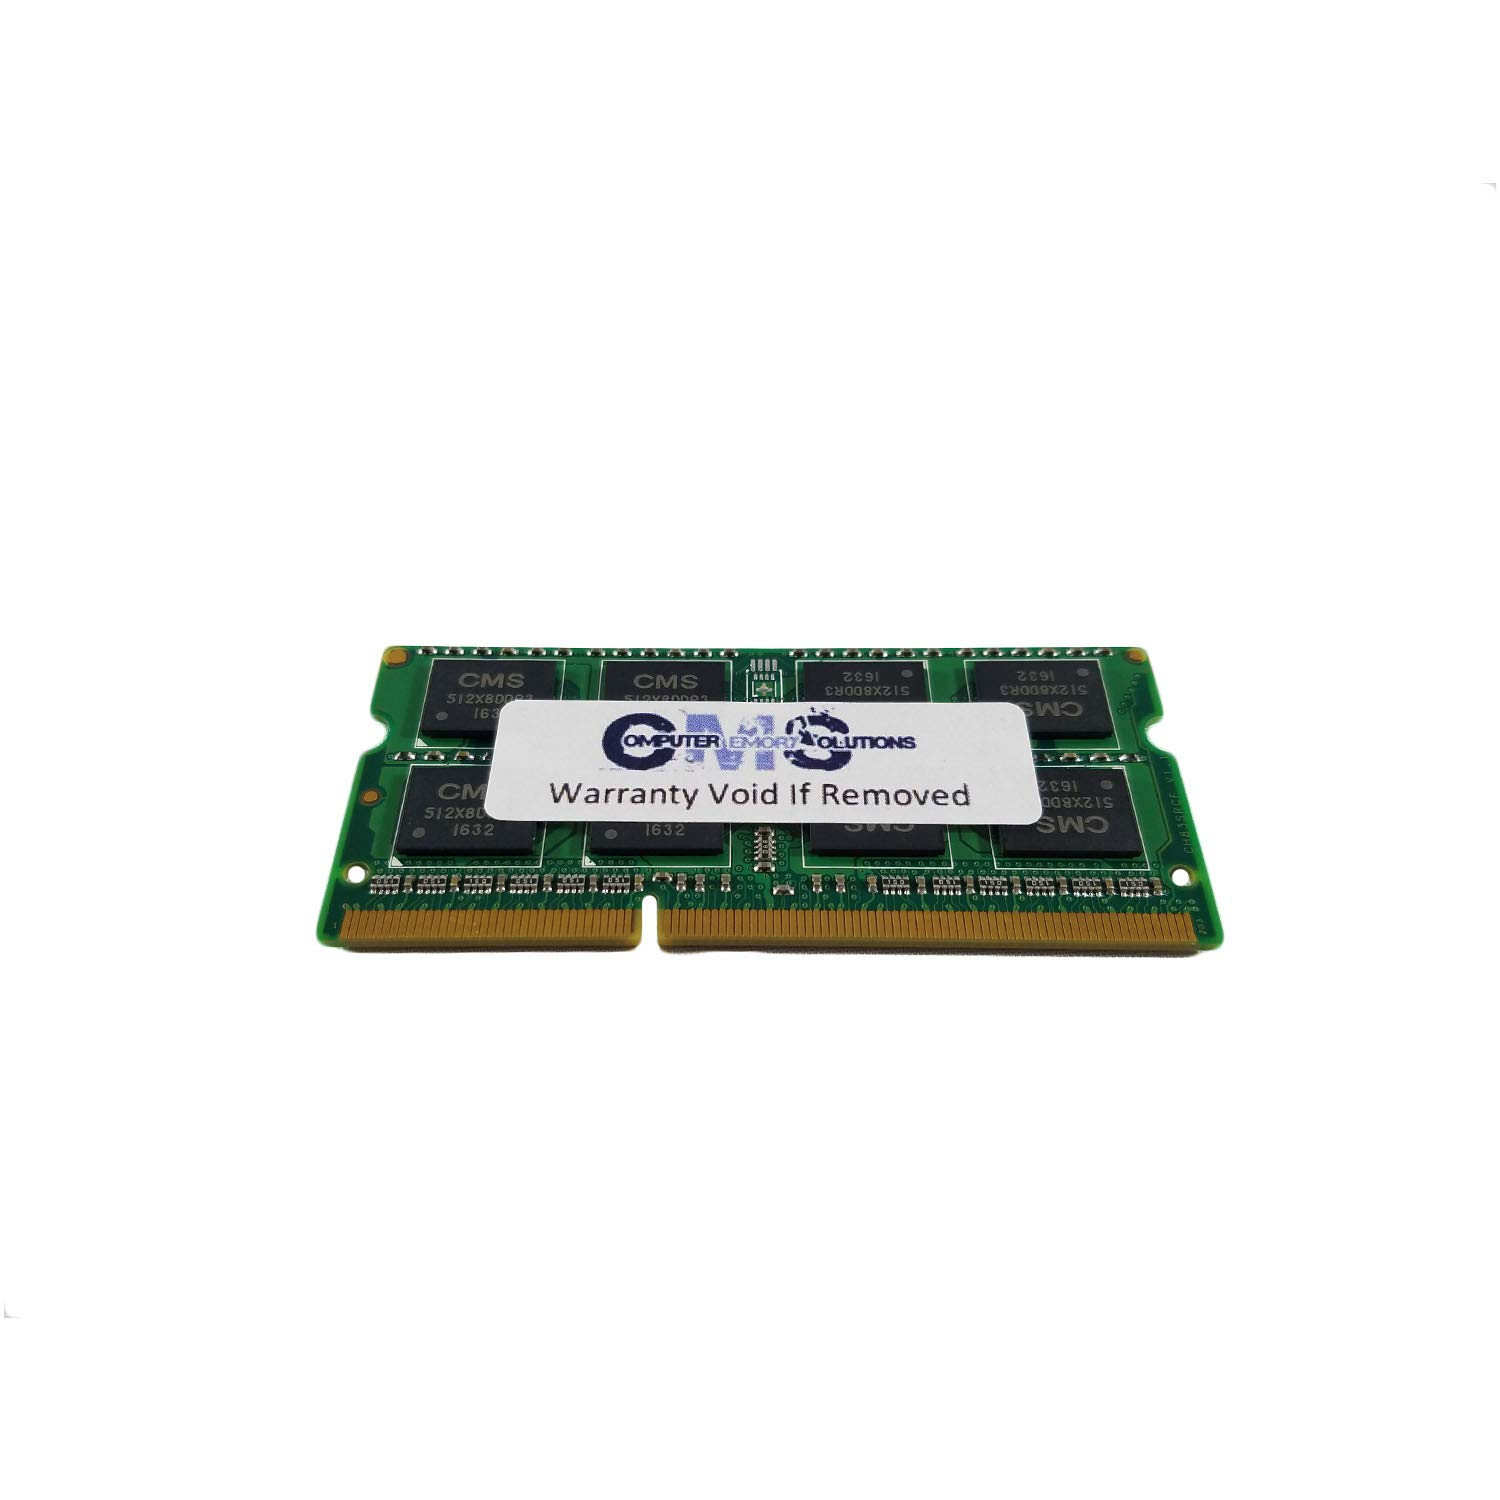 4Gb (1X4Gb) Ram Memory Compatible with Acer Aspire V5-131, V5-131-2840, V5-131-2803 By CMS A25 at Amazon.com